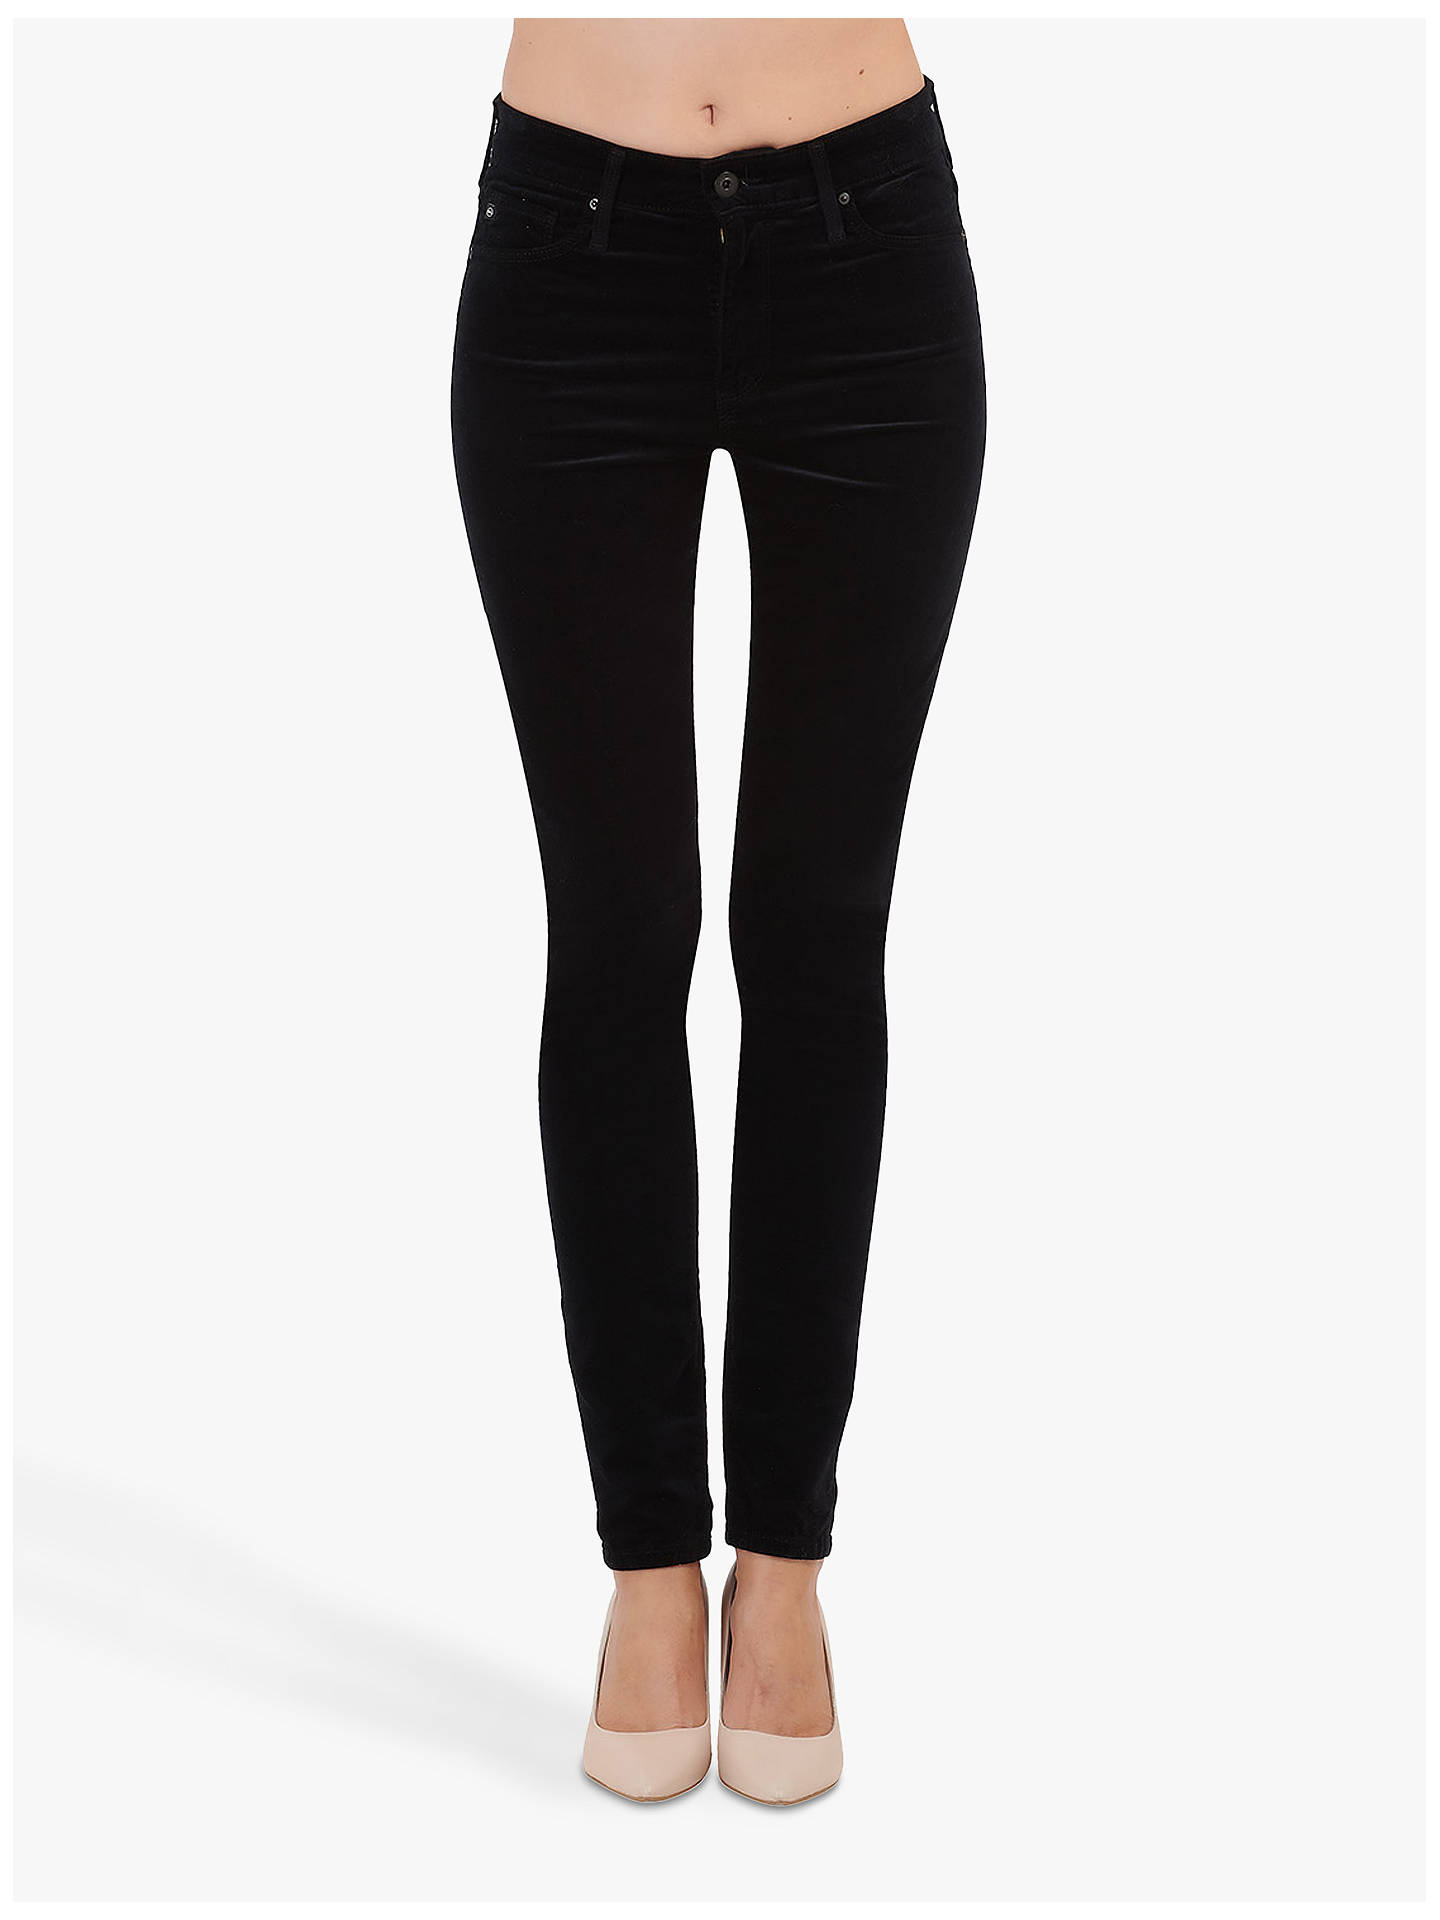 BuyAG The Farrah High Rise Skinny Ankle Jeans, Black, 24 Online at johnlewis.com